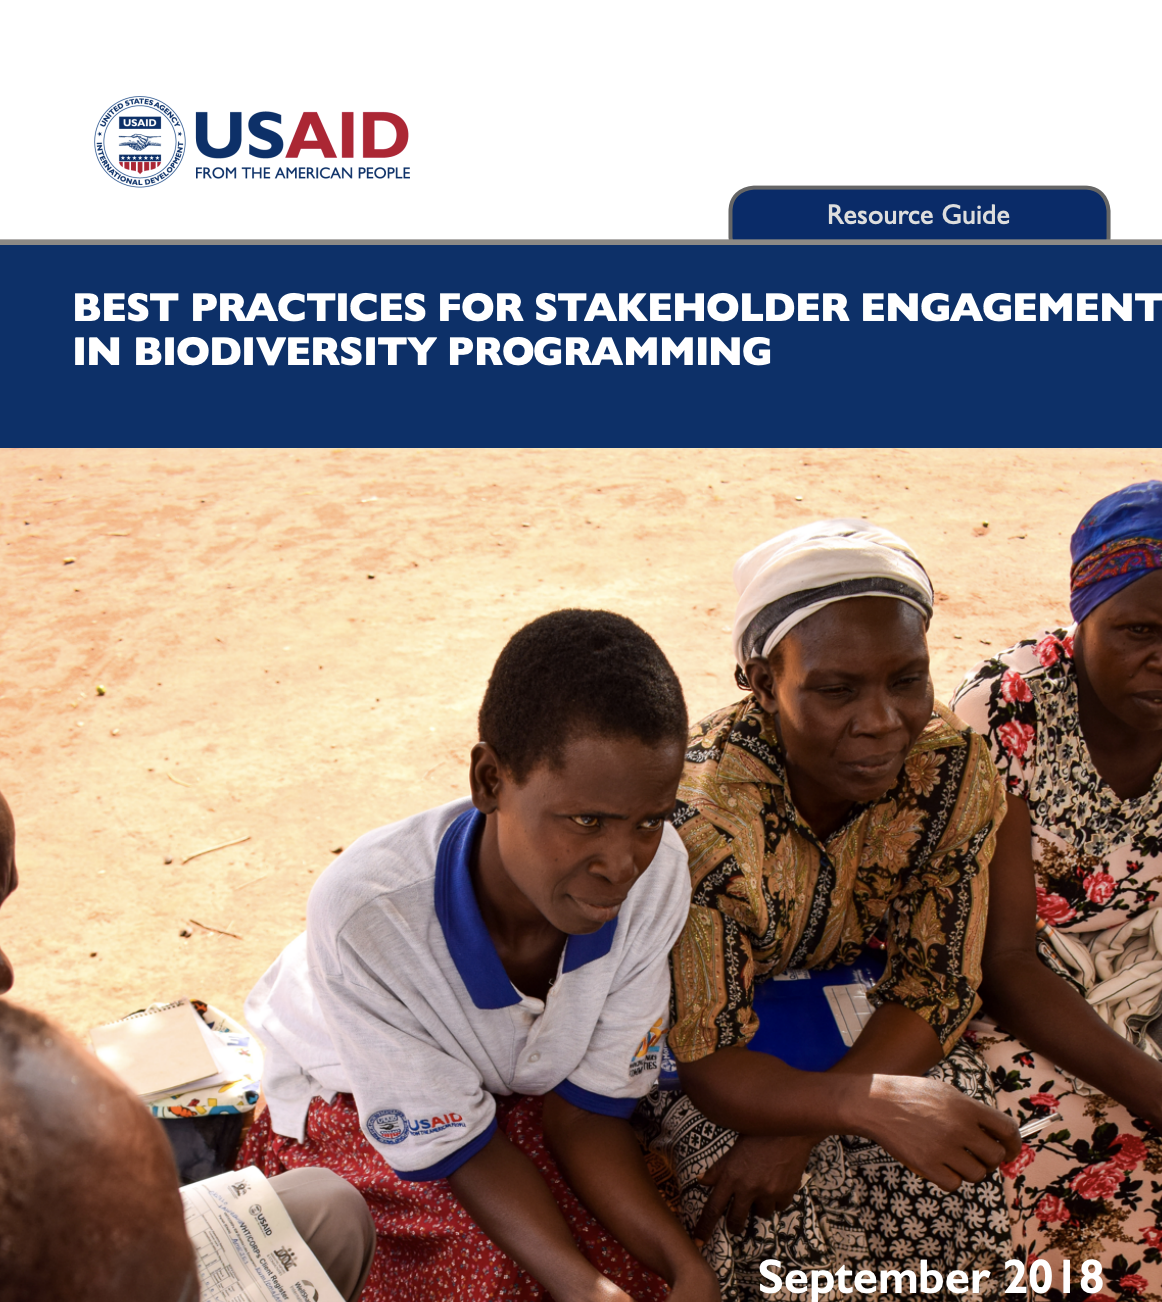 Best Practices for Stakeholder Engagement in Biodiversity Programming